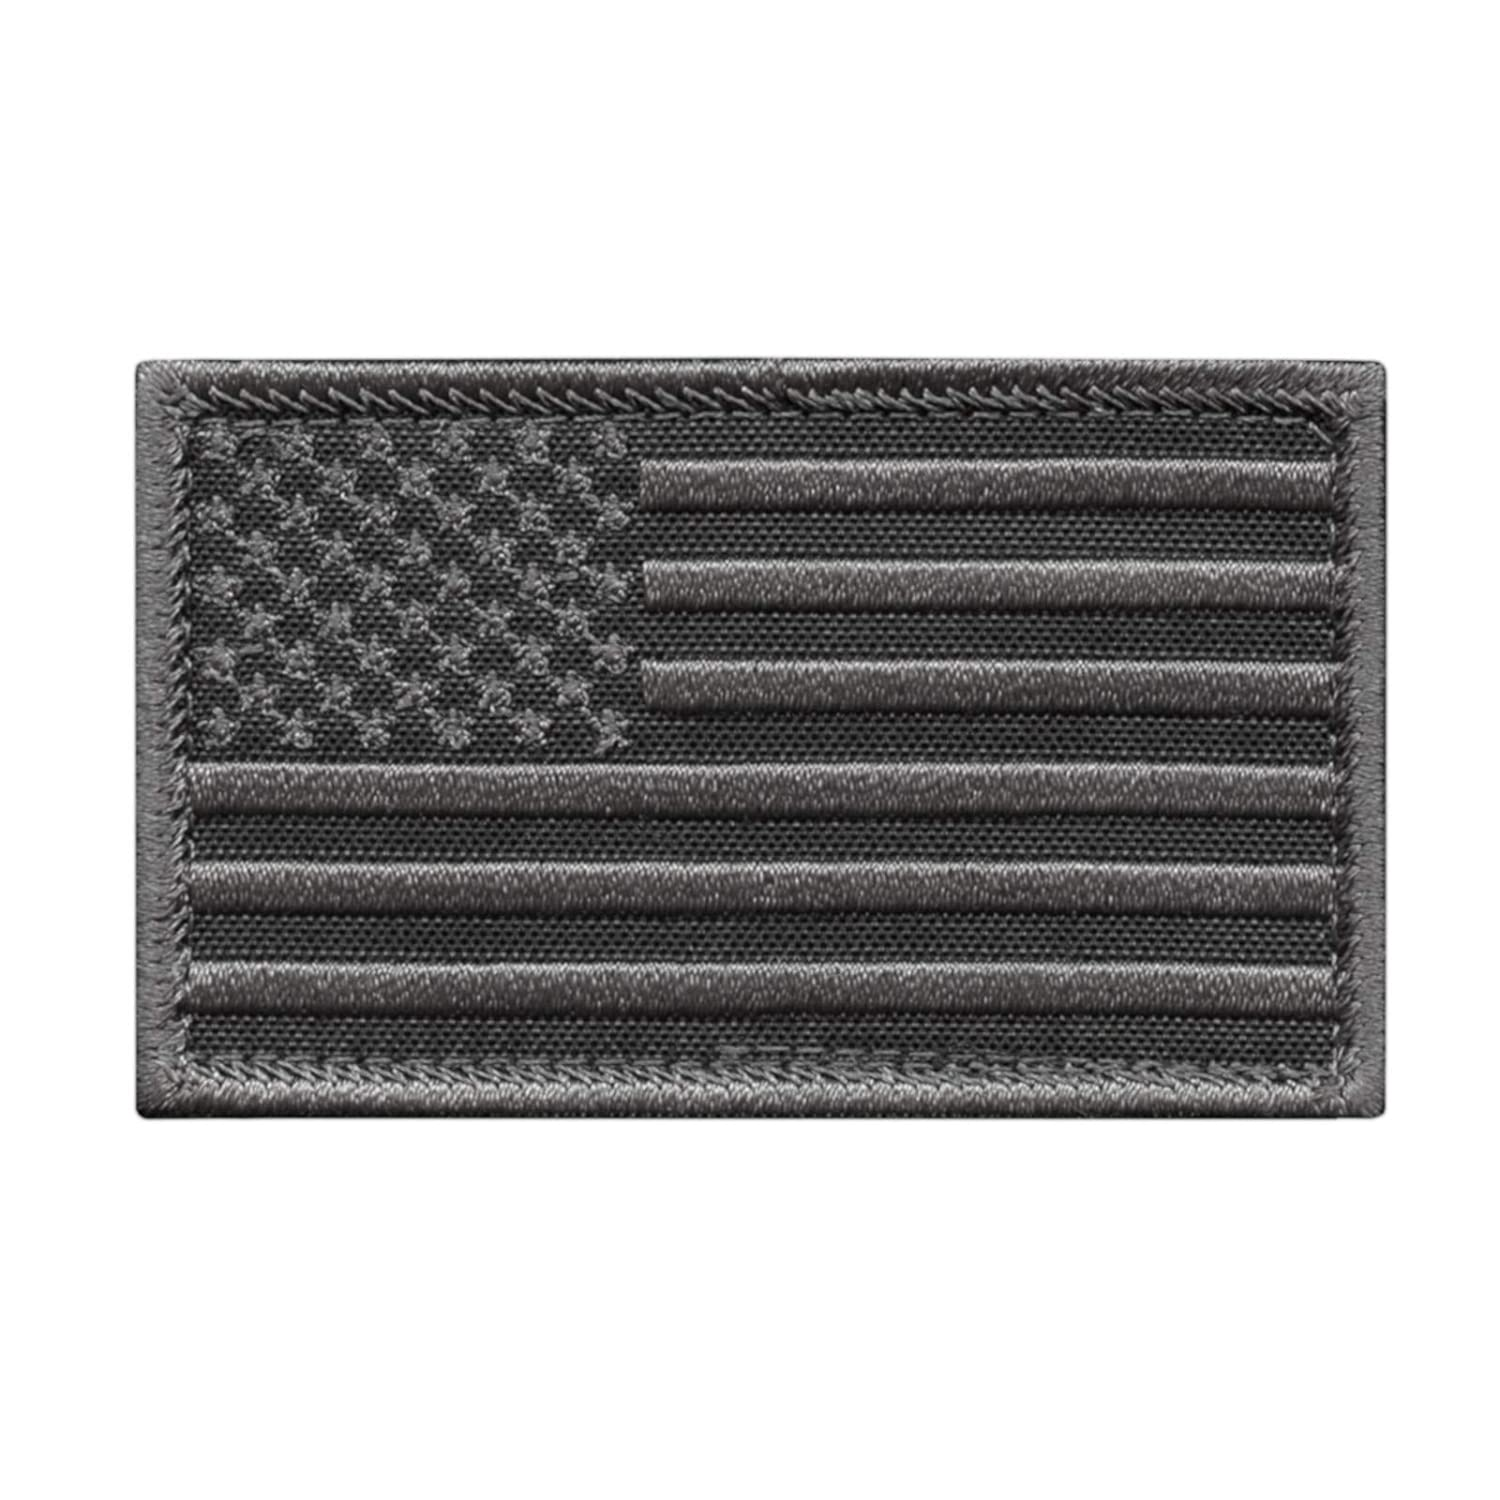 2AFTER1 USA American Flag 2x3.25 Subdued Stars and Stripes Tactical Morale Hook/&Loop Cap Patch